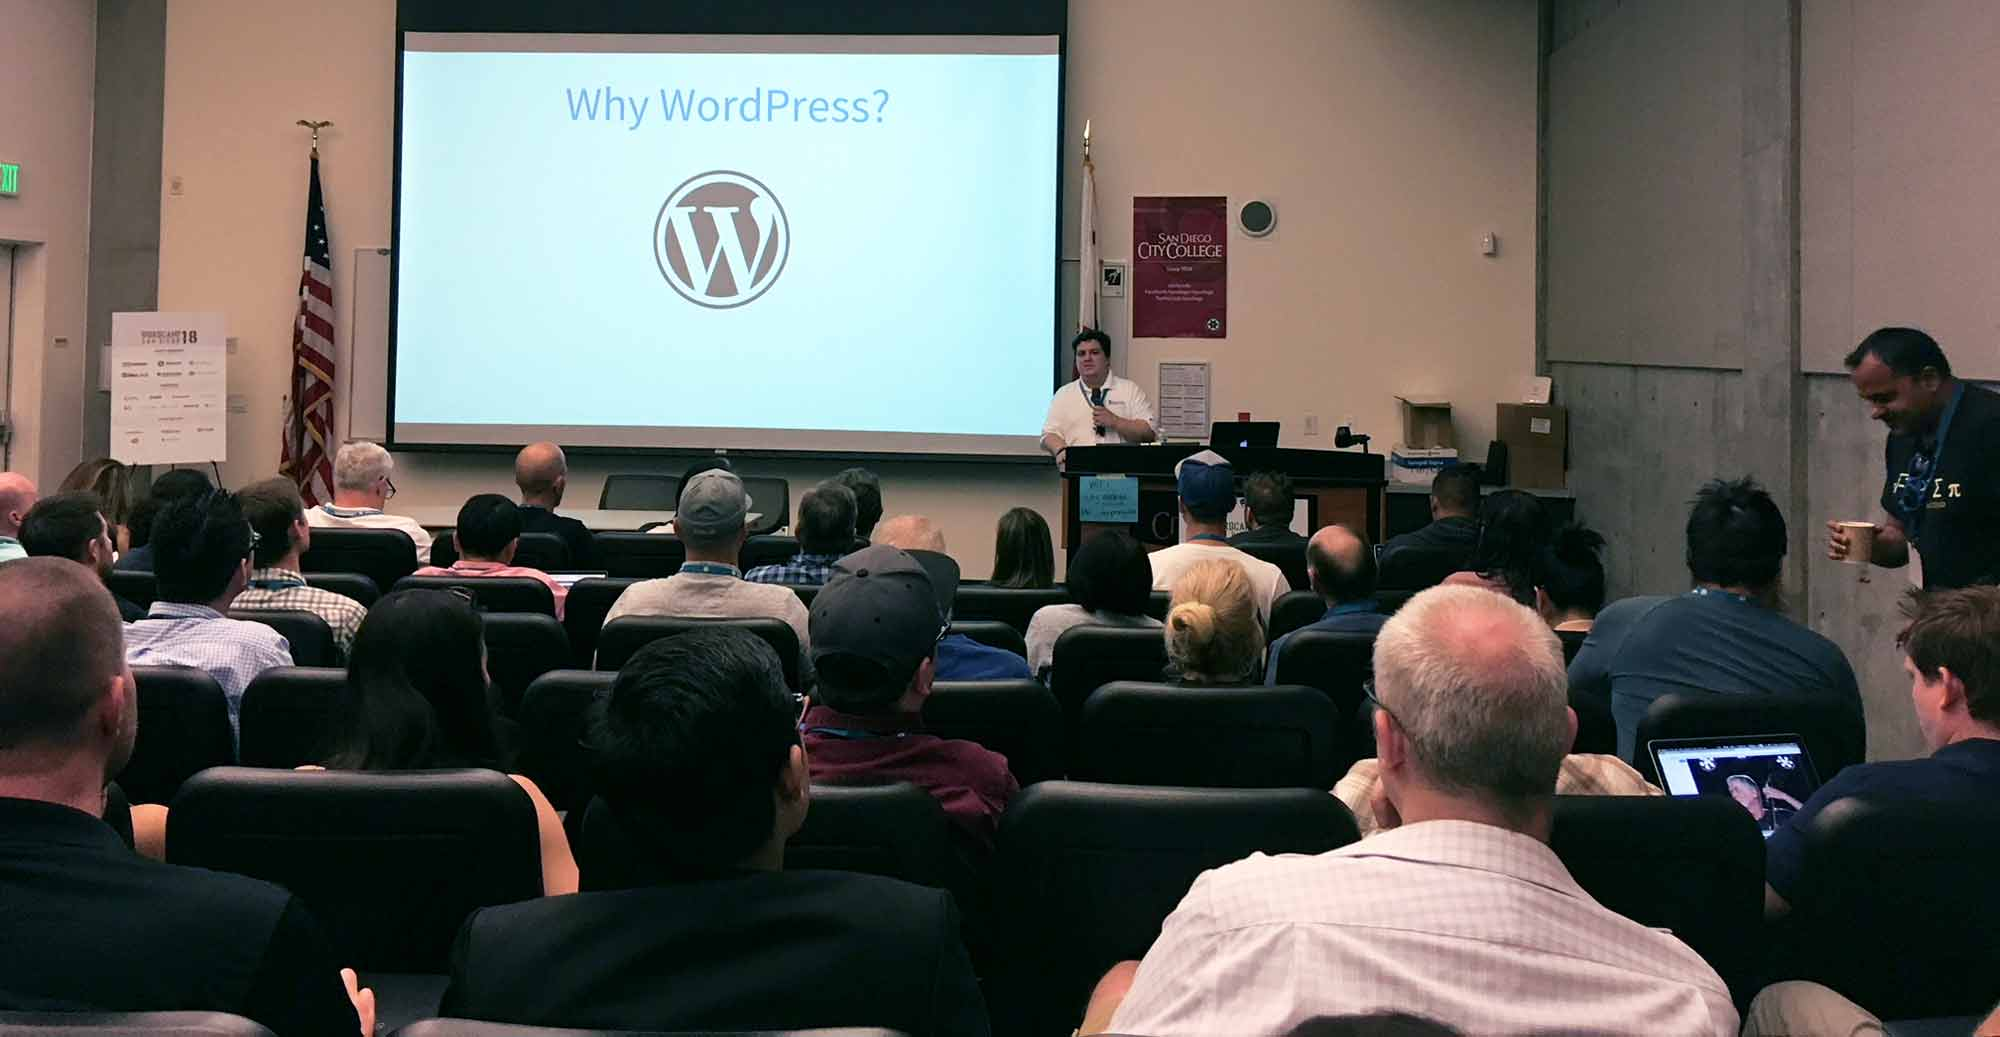 Chris David Miles of Bluehost at San Diego WordCamp 2018